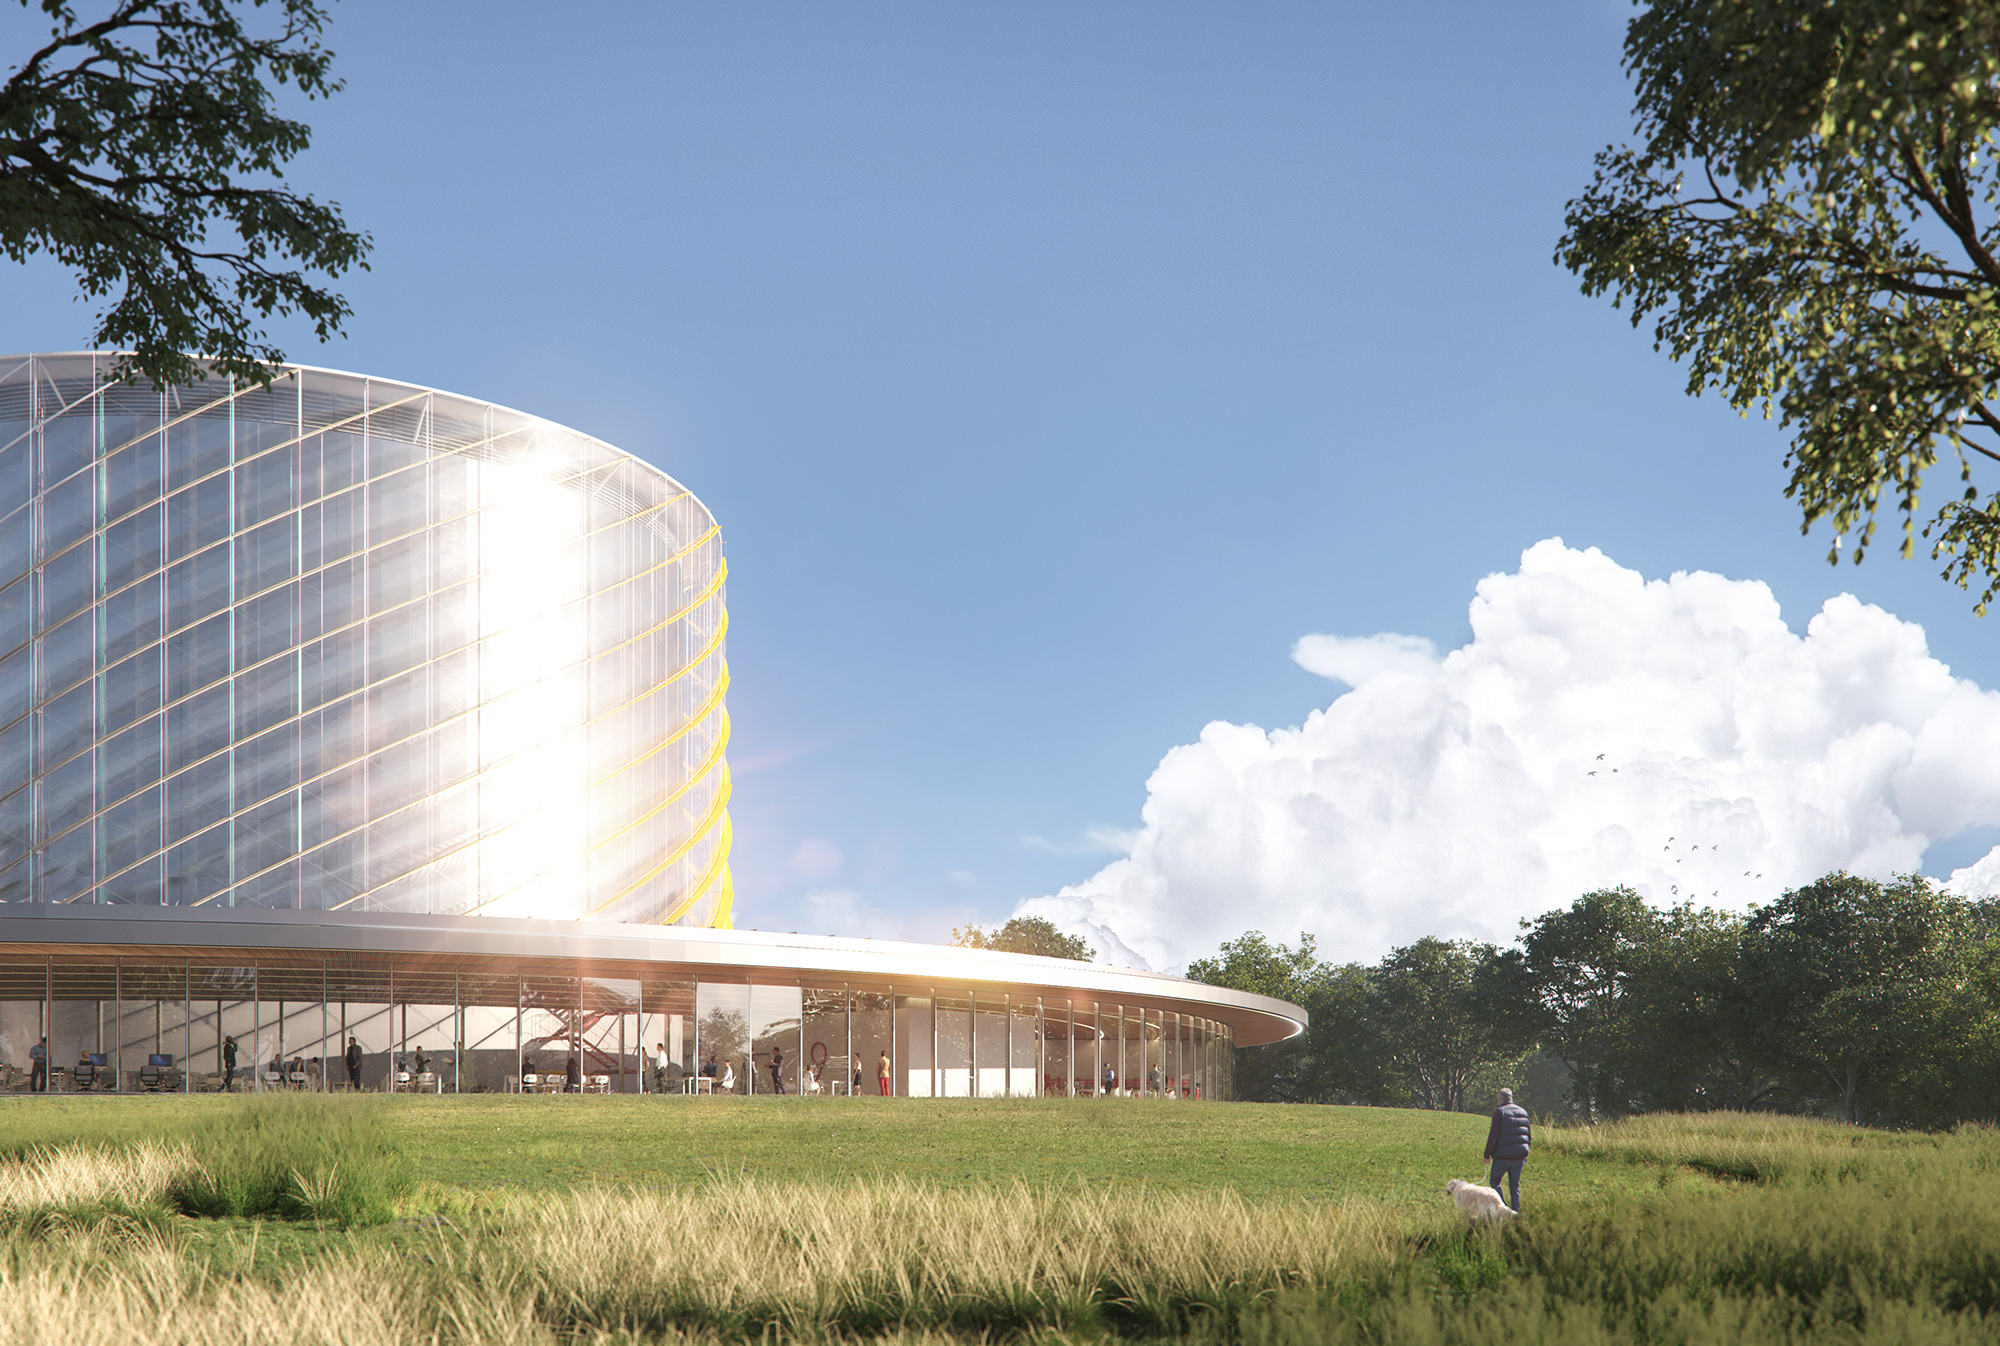 General Fusion to build its Fusion Demonstration Plant at UKAEA's Culham Science Centre